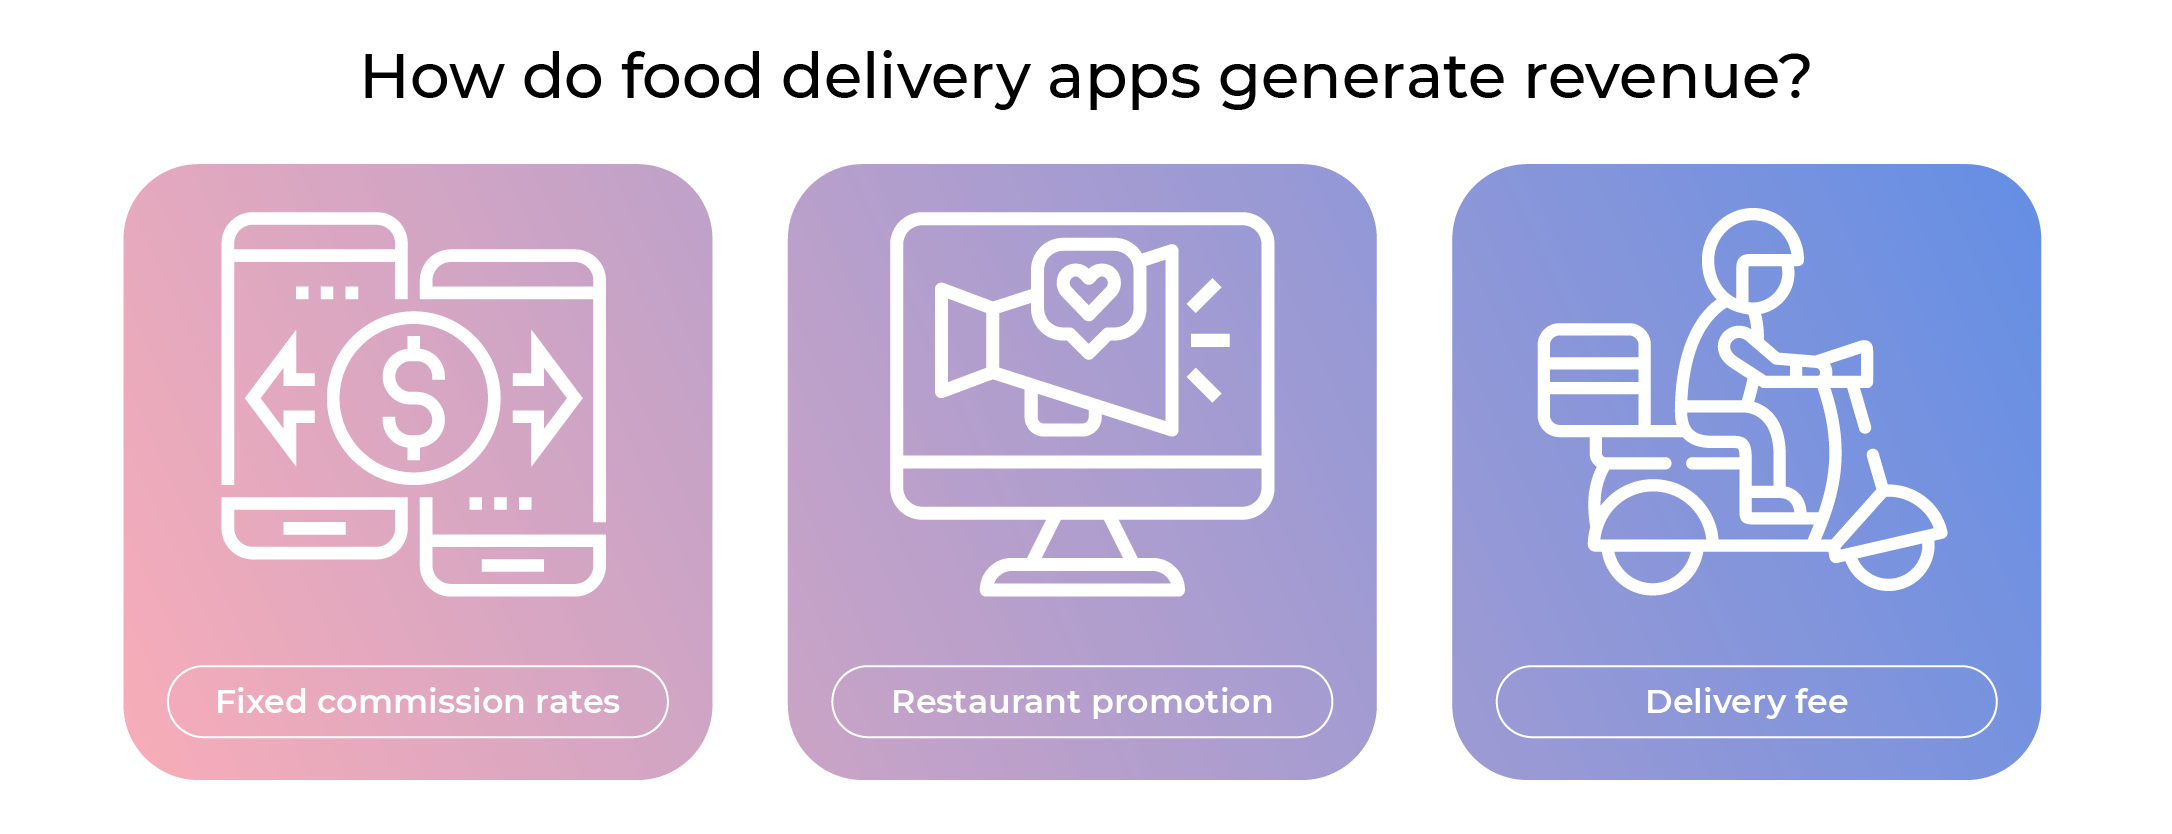 food delivery application revenue